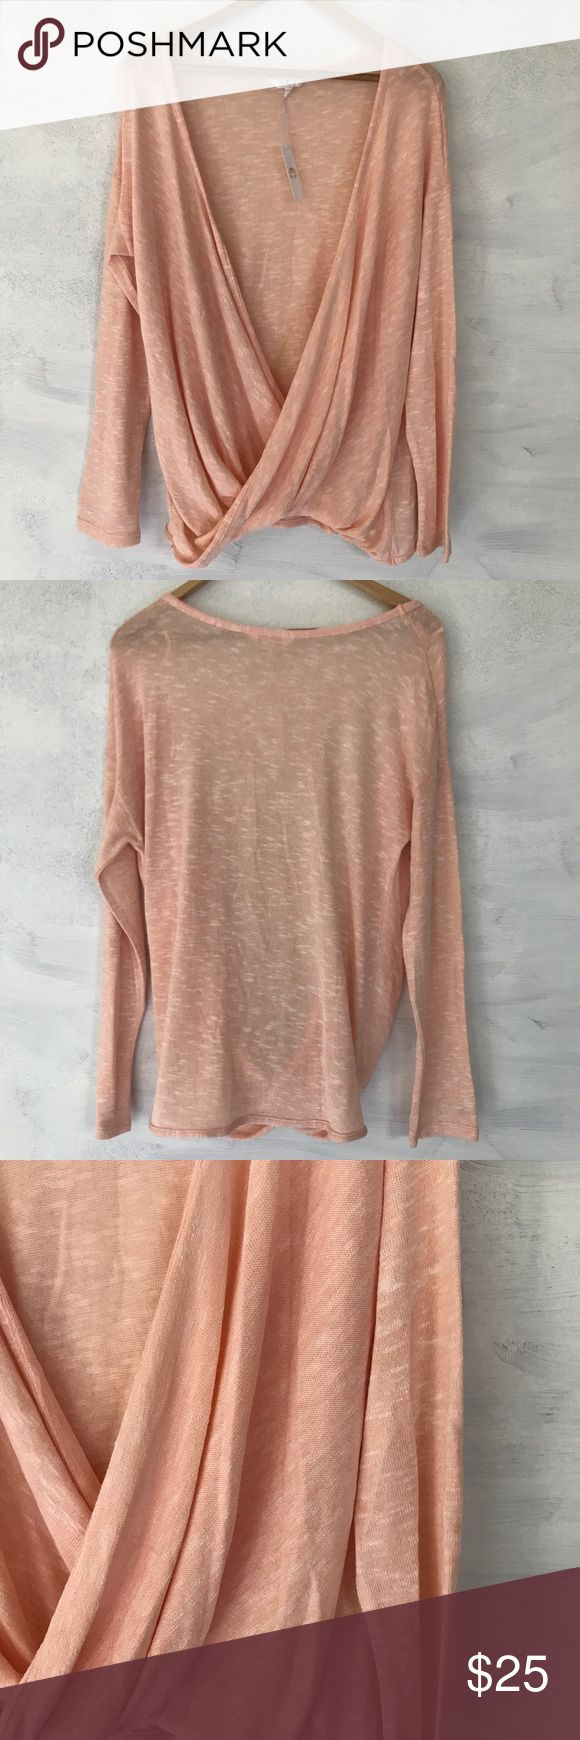 "Twist front top. Long sleeve twist front top. NWT. Light peach color. Size medium. Measures 19"" pit-to-pit and 25"" long. Sorry, no trades & I am unable to model. Tops"